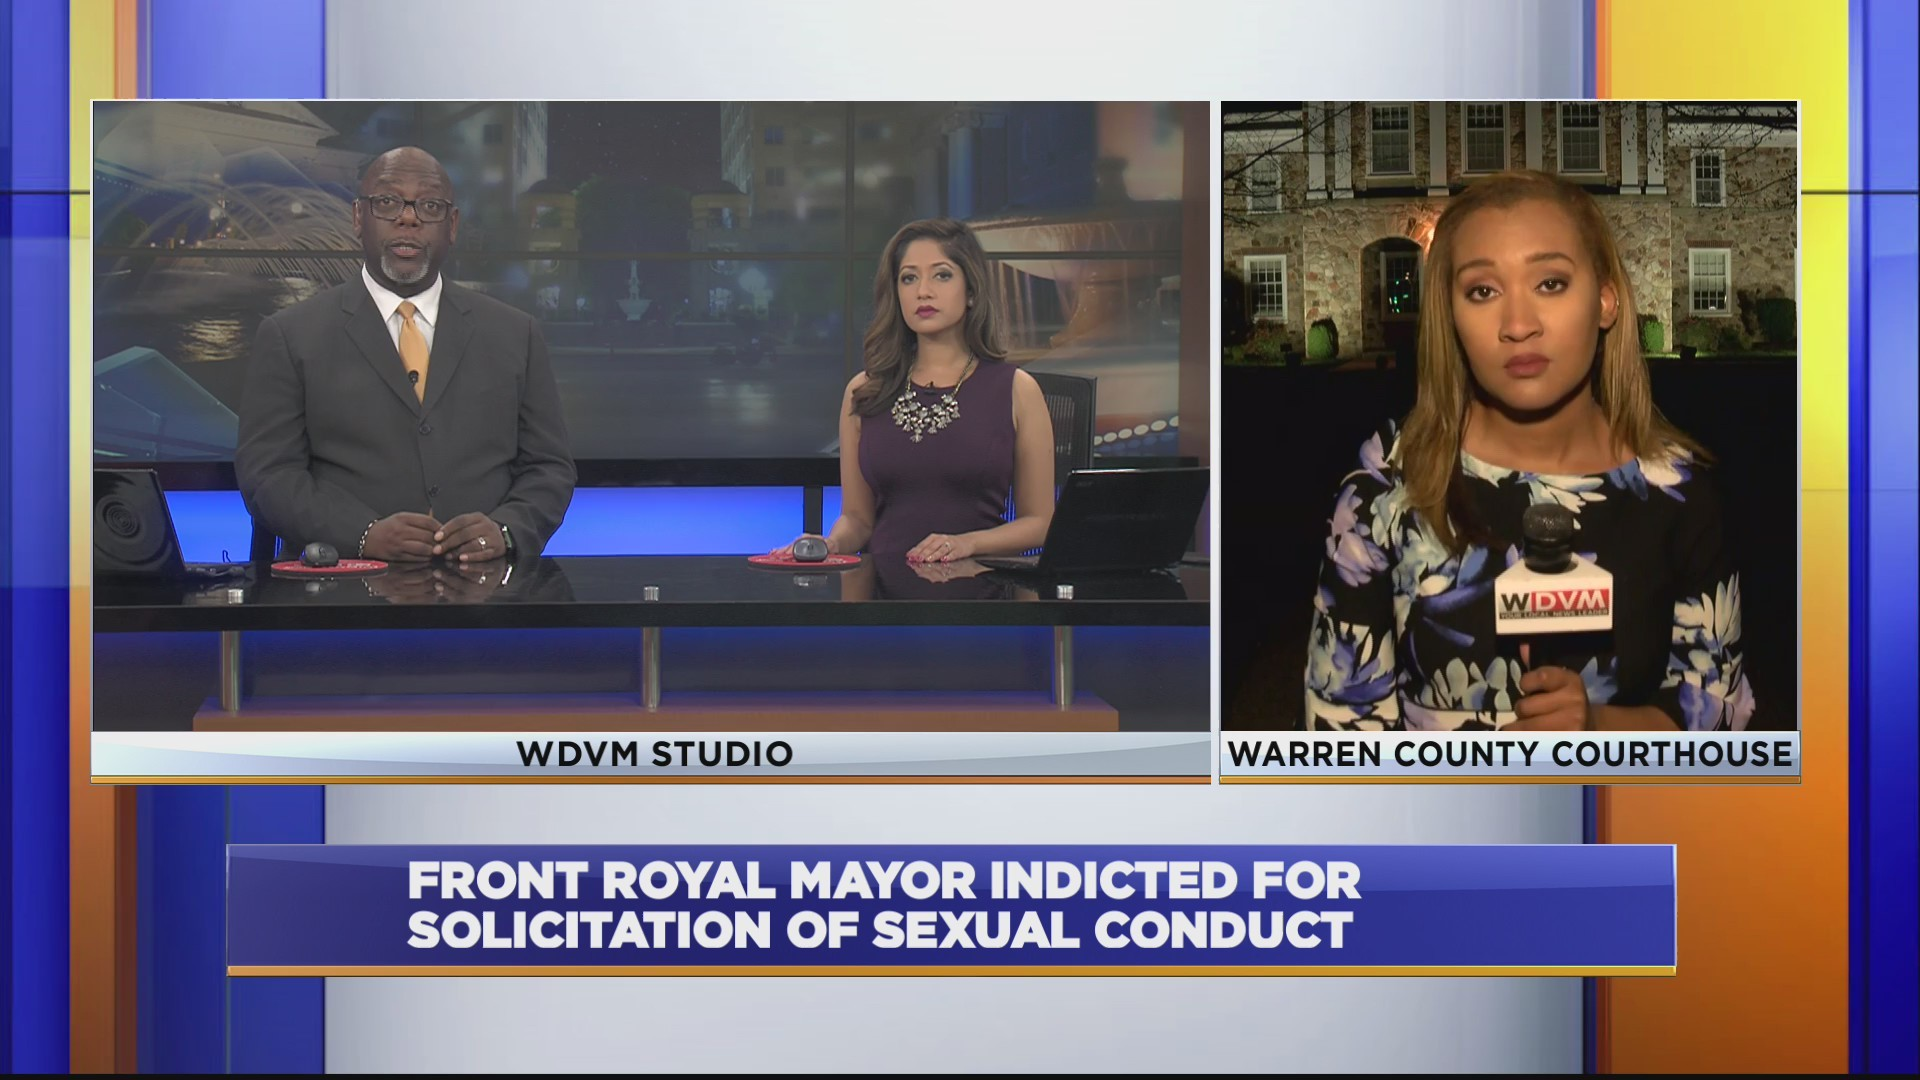 Front Royal Mayor indicted for solicitation of sexual conduct